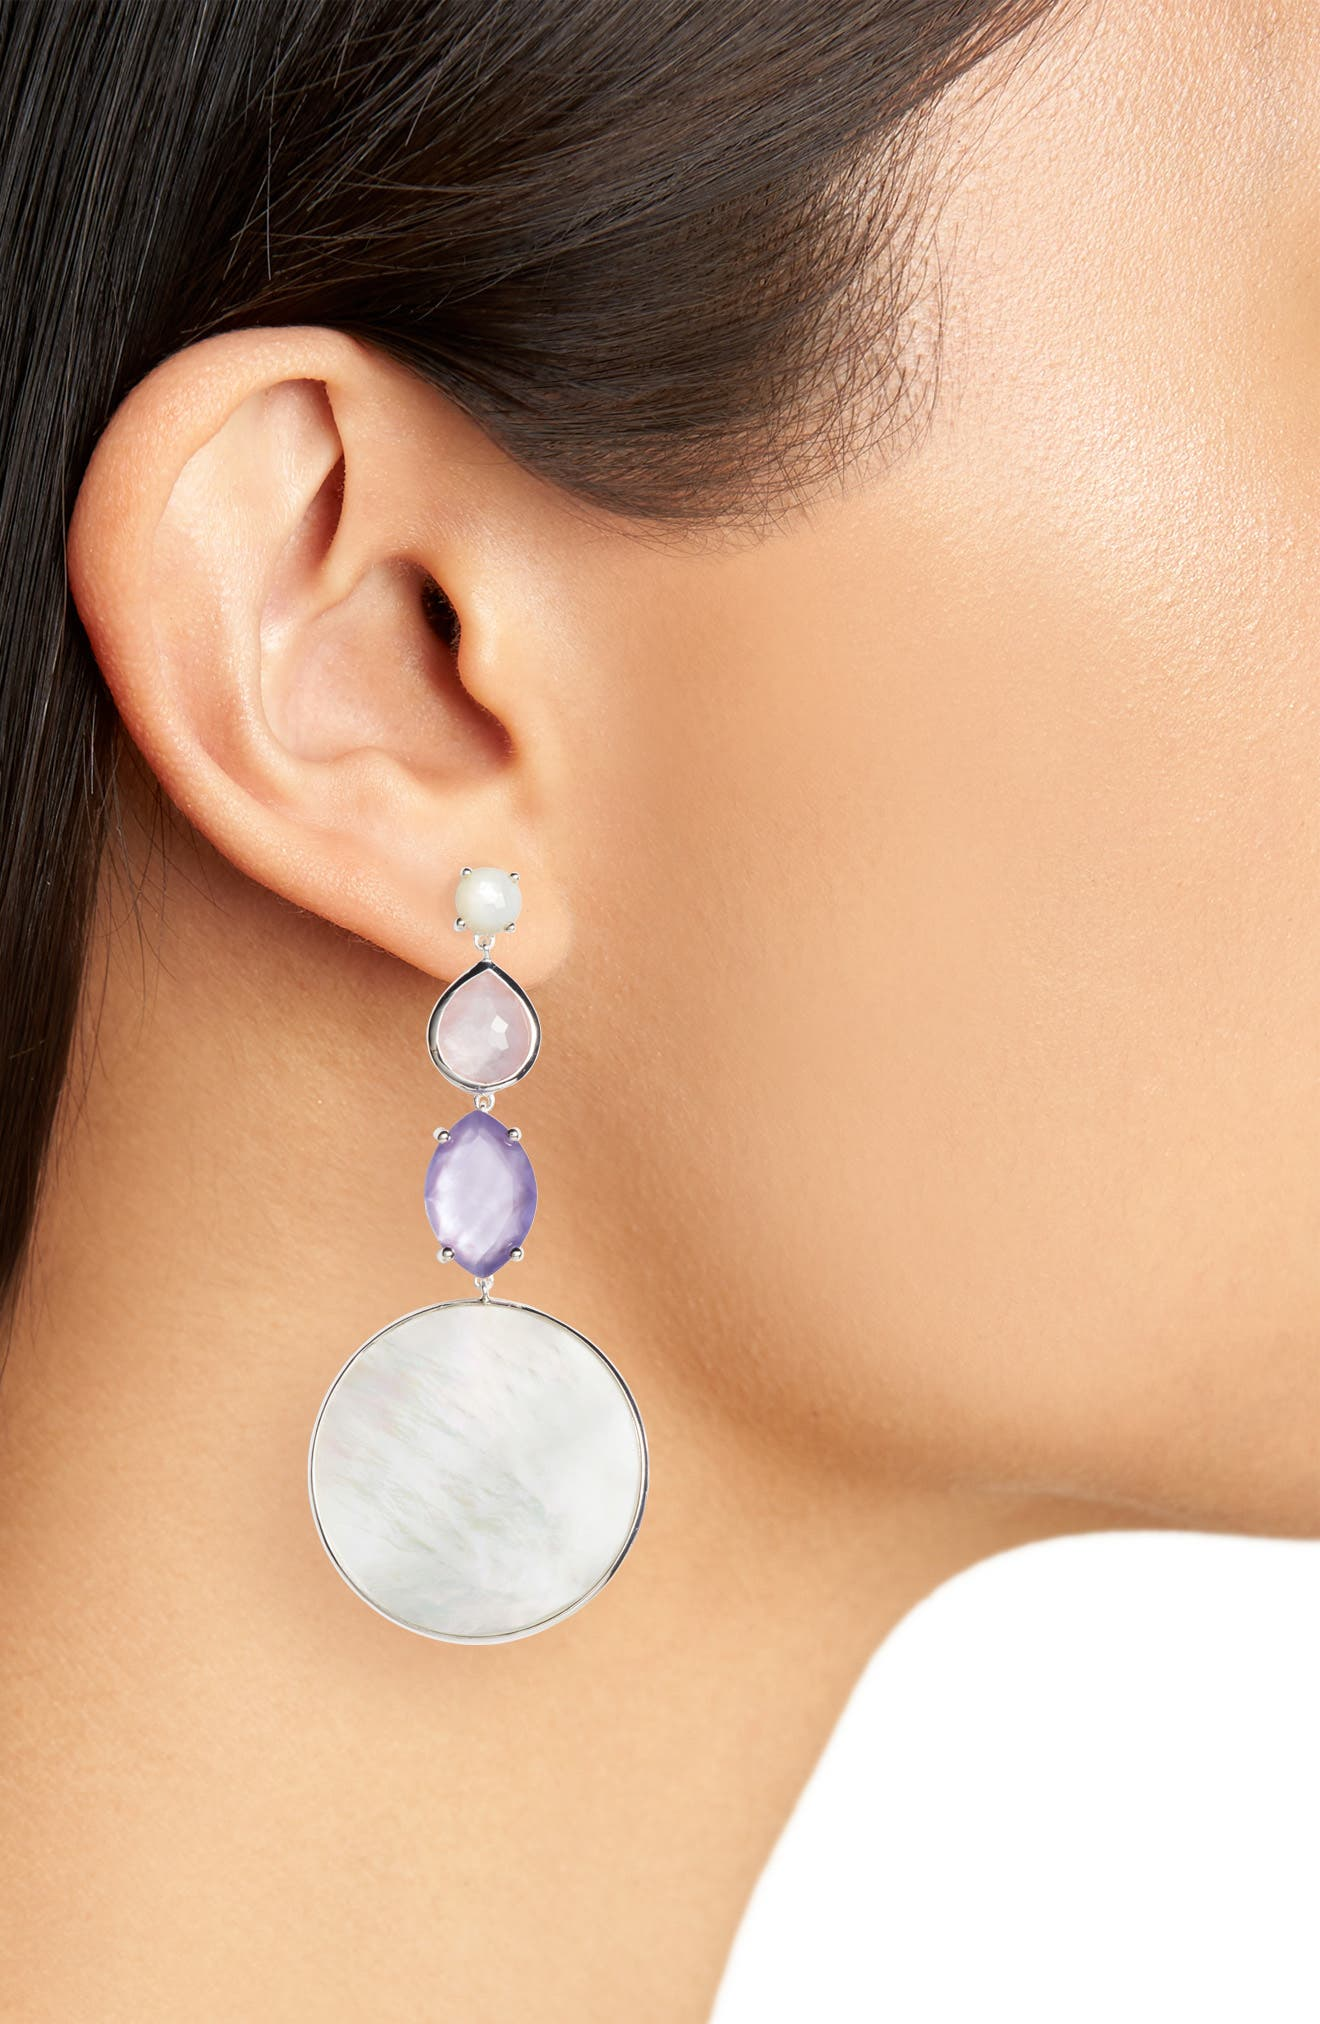 Wonderland Long Multi Shape Stone Earrings,                             Alternate thumbnail 2, color,                             SILVER/ PRIMROSE